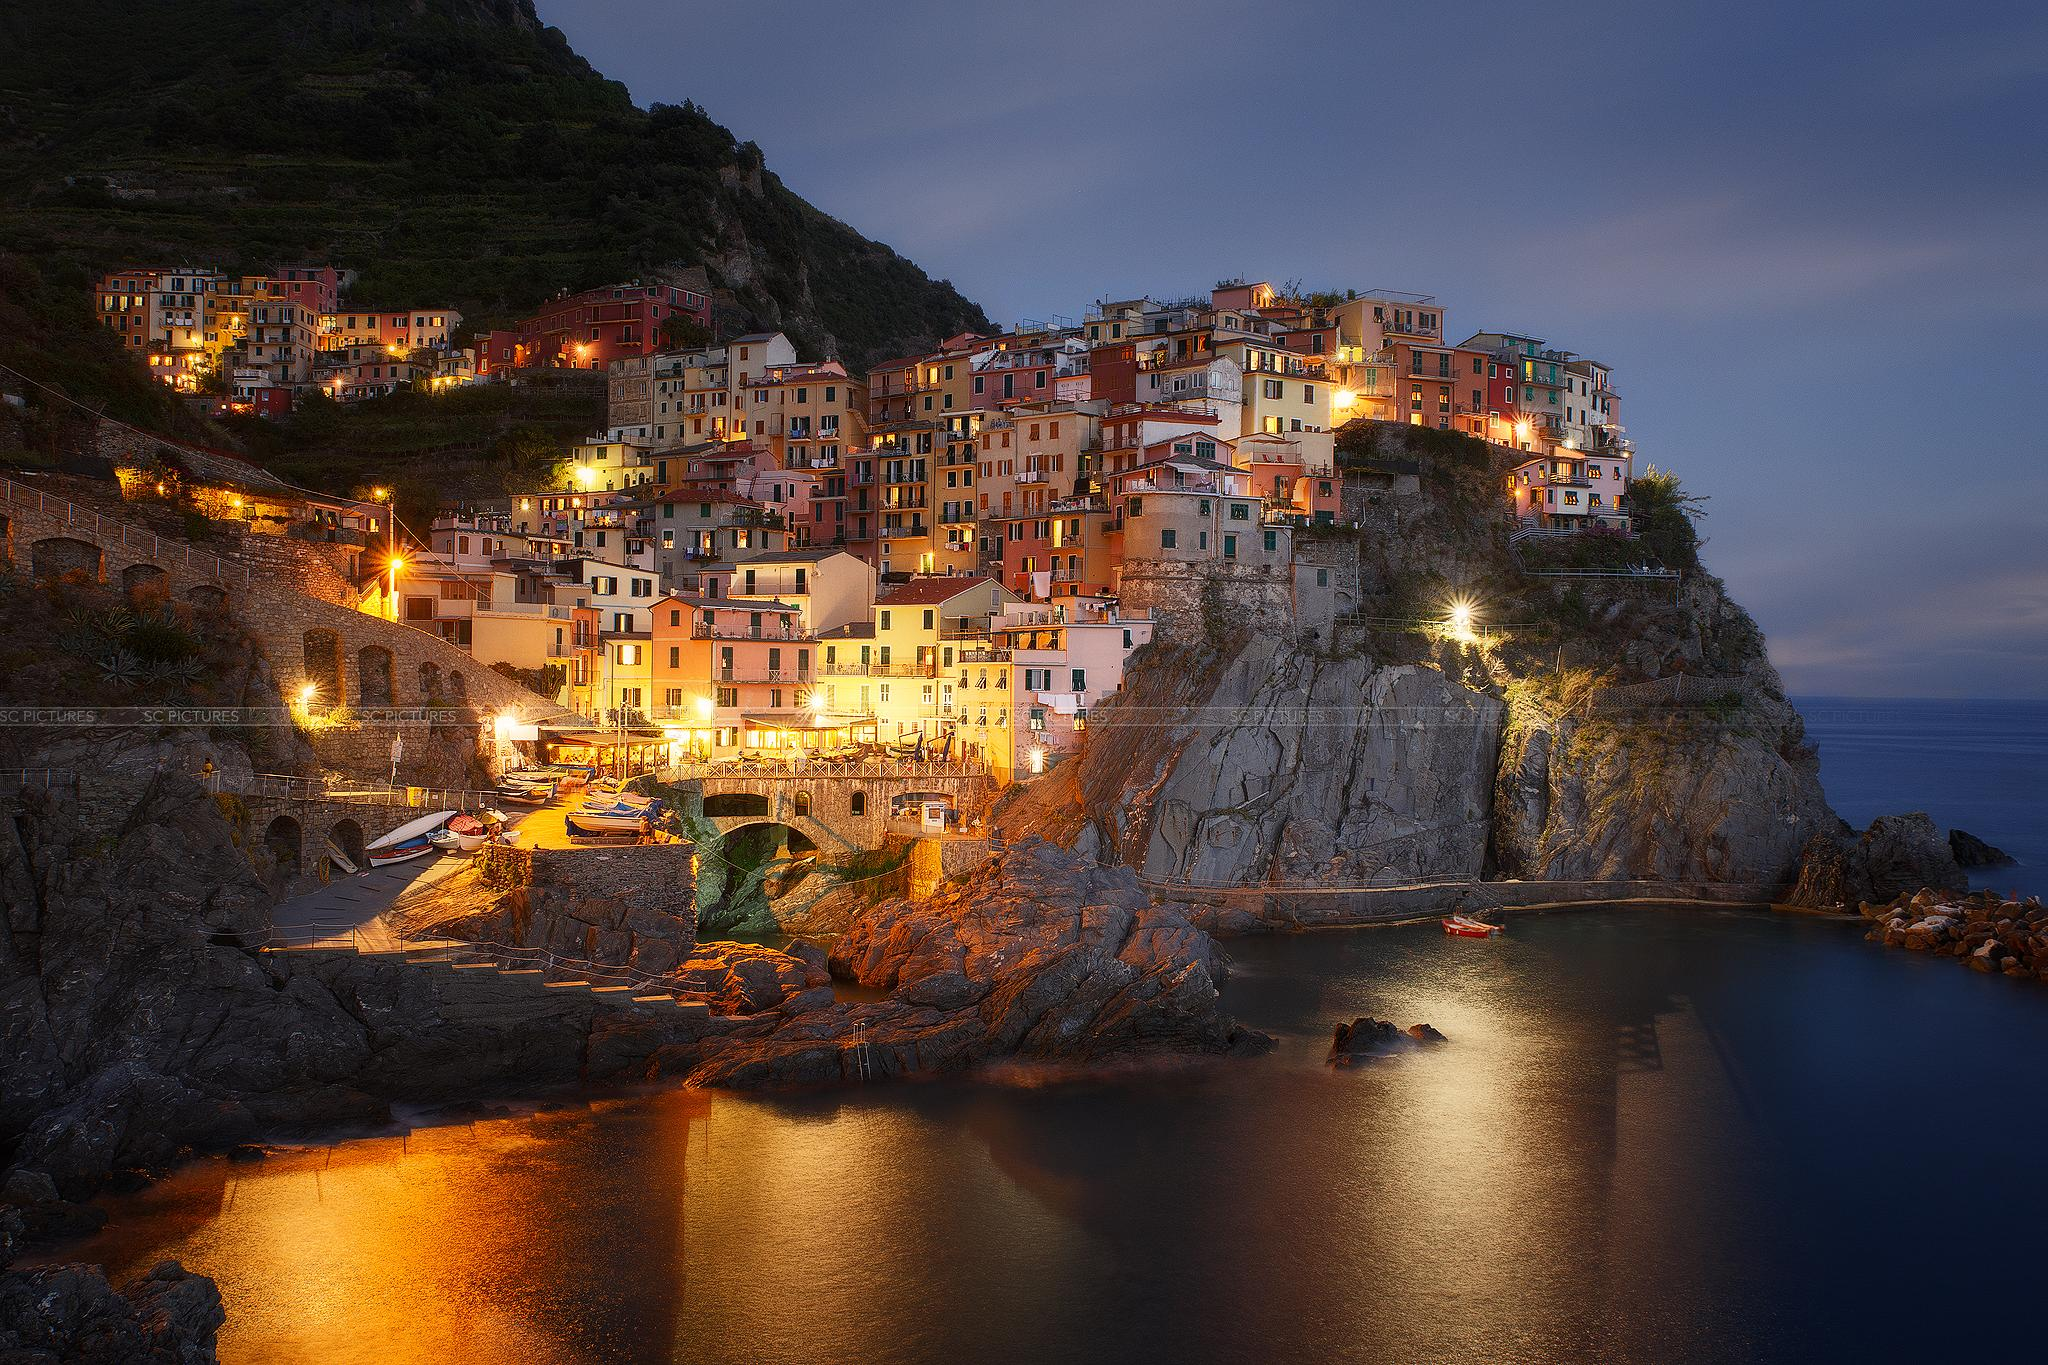 Blue hour at Manarola by scpictures